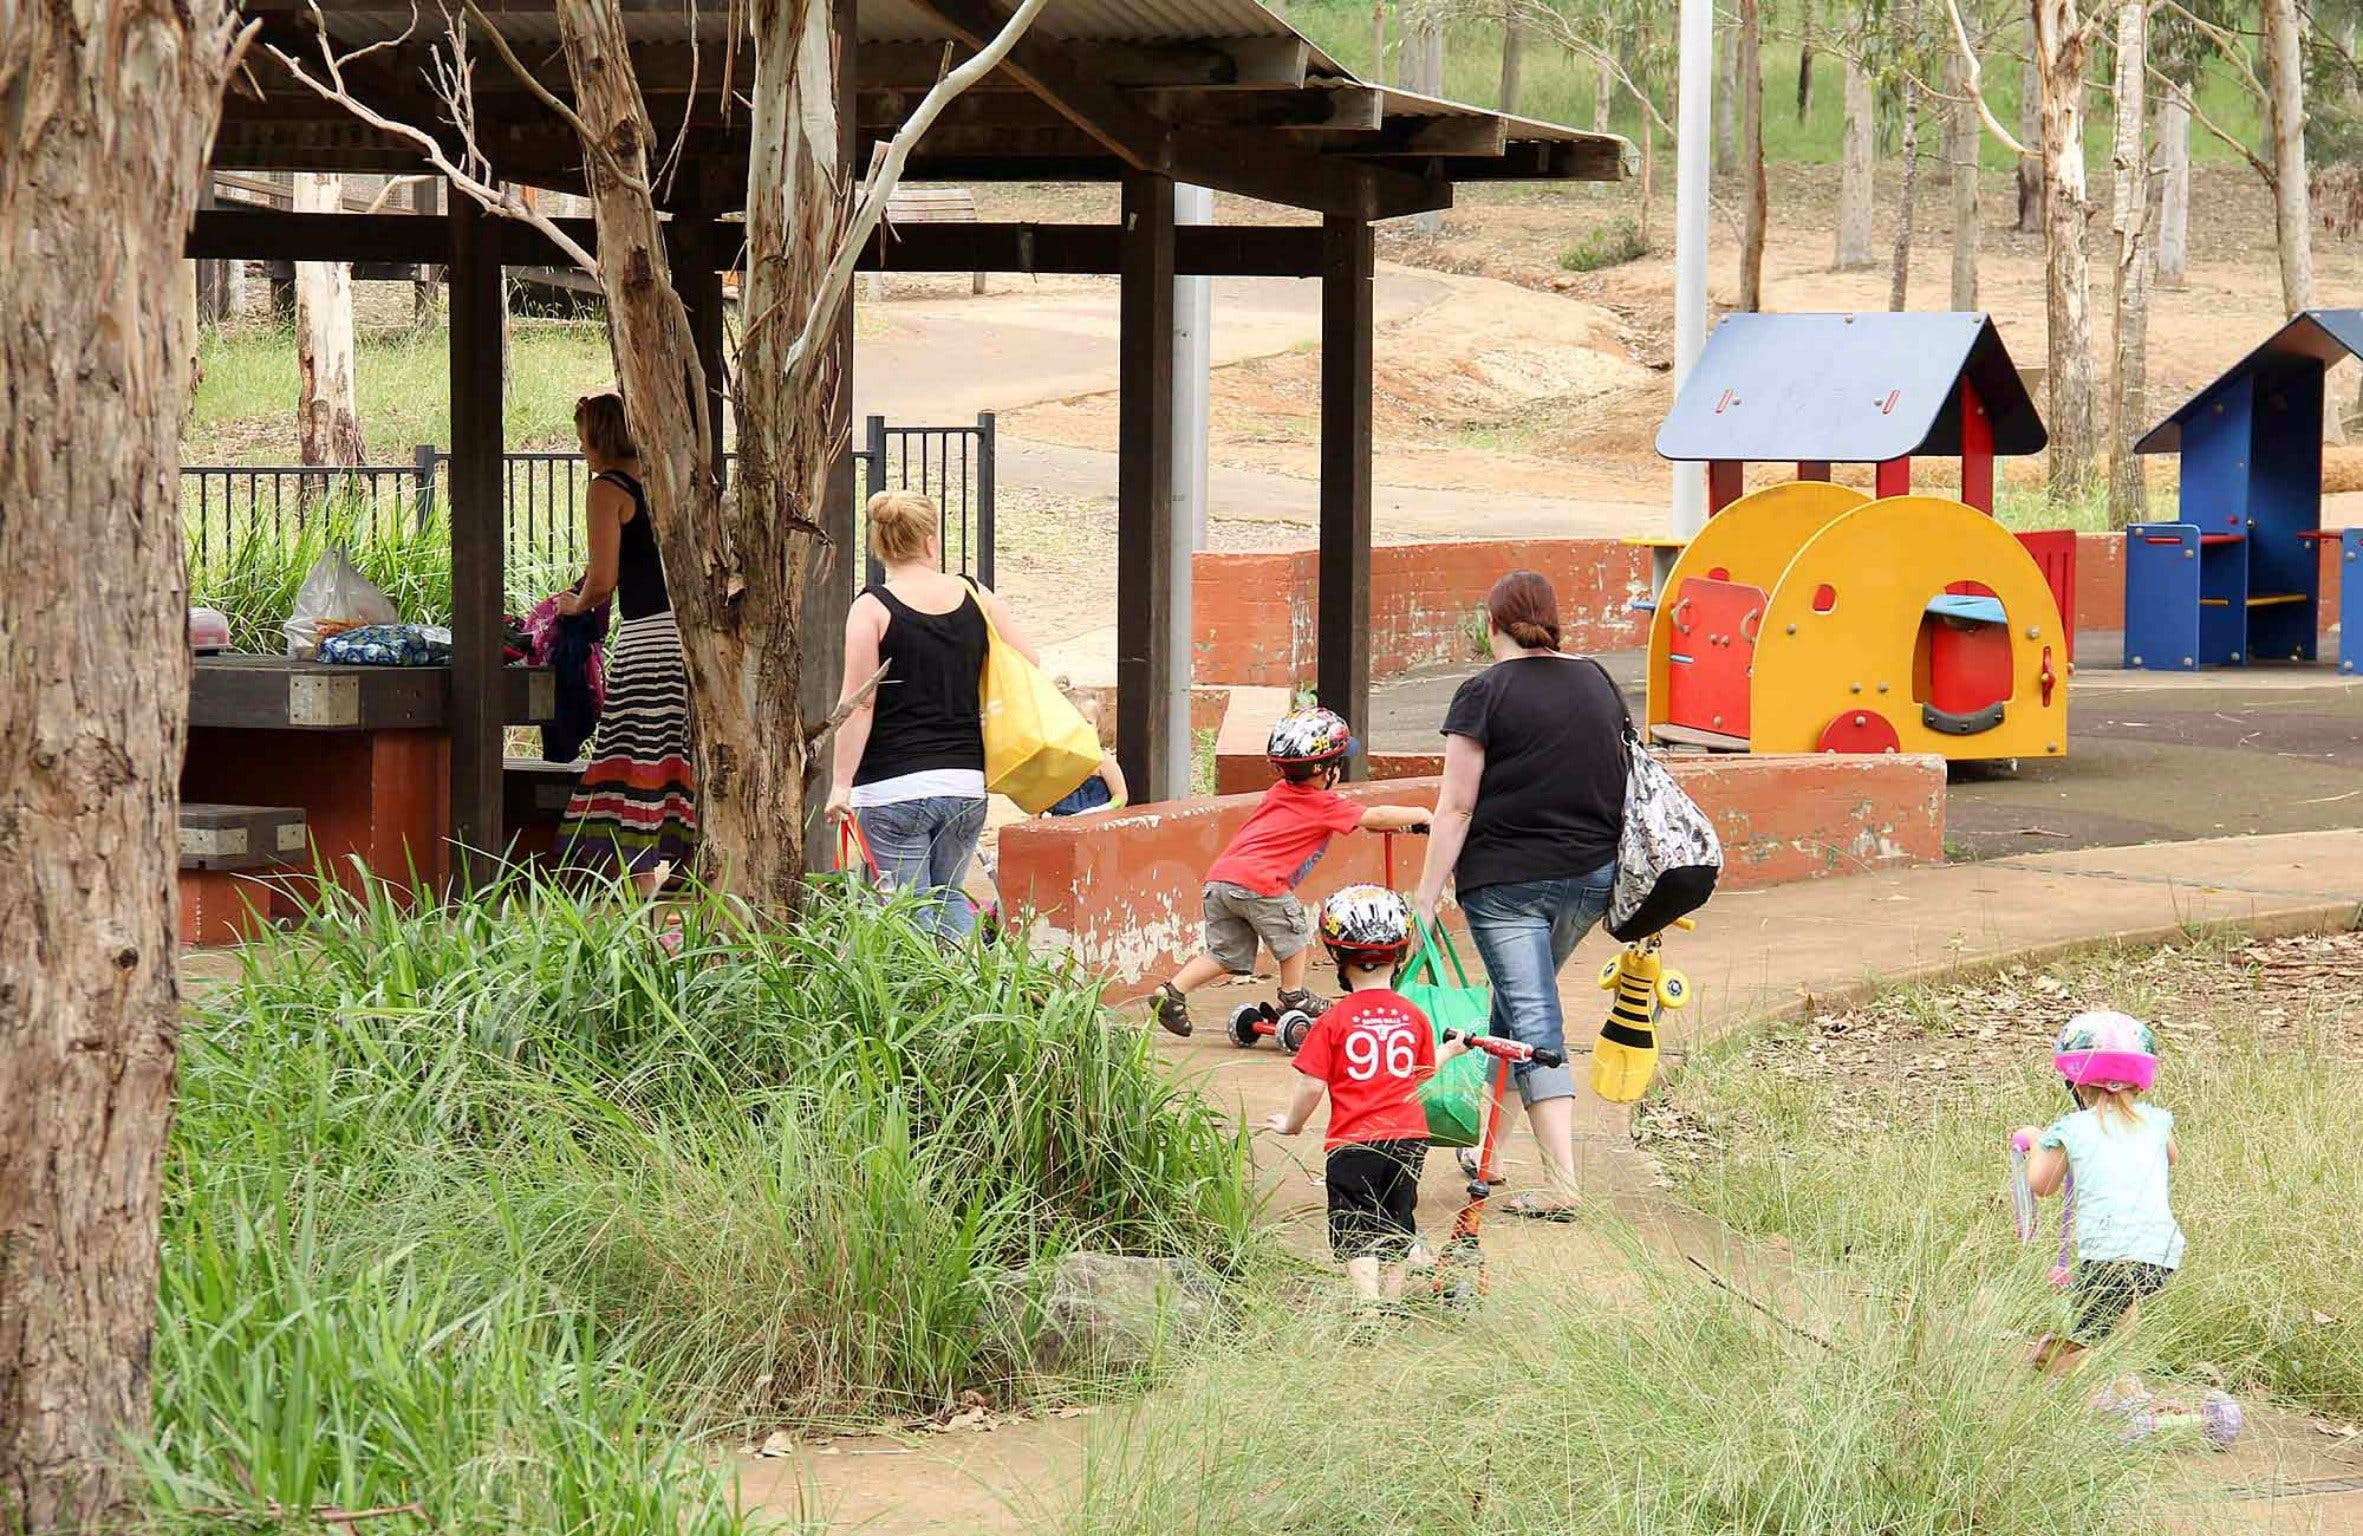 Rouse Hill picnic area and playground - Accommodation Great Ocean Road